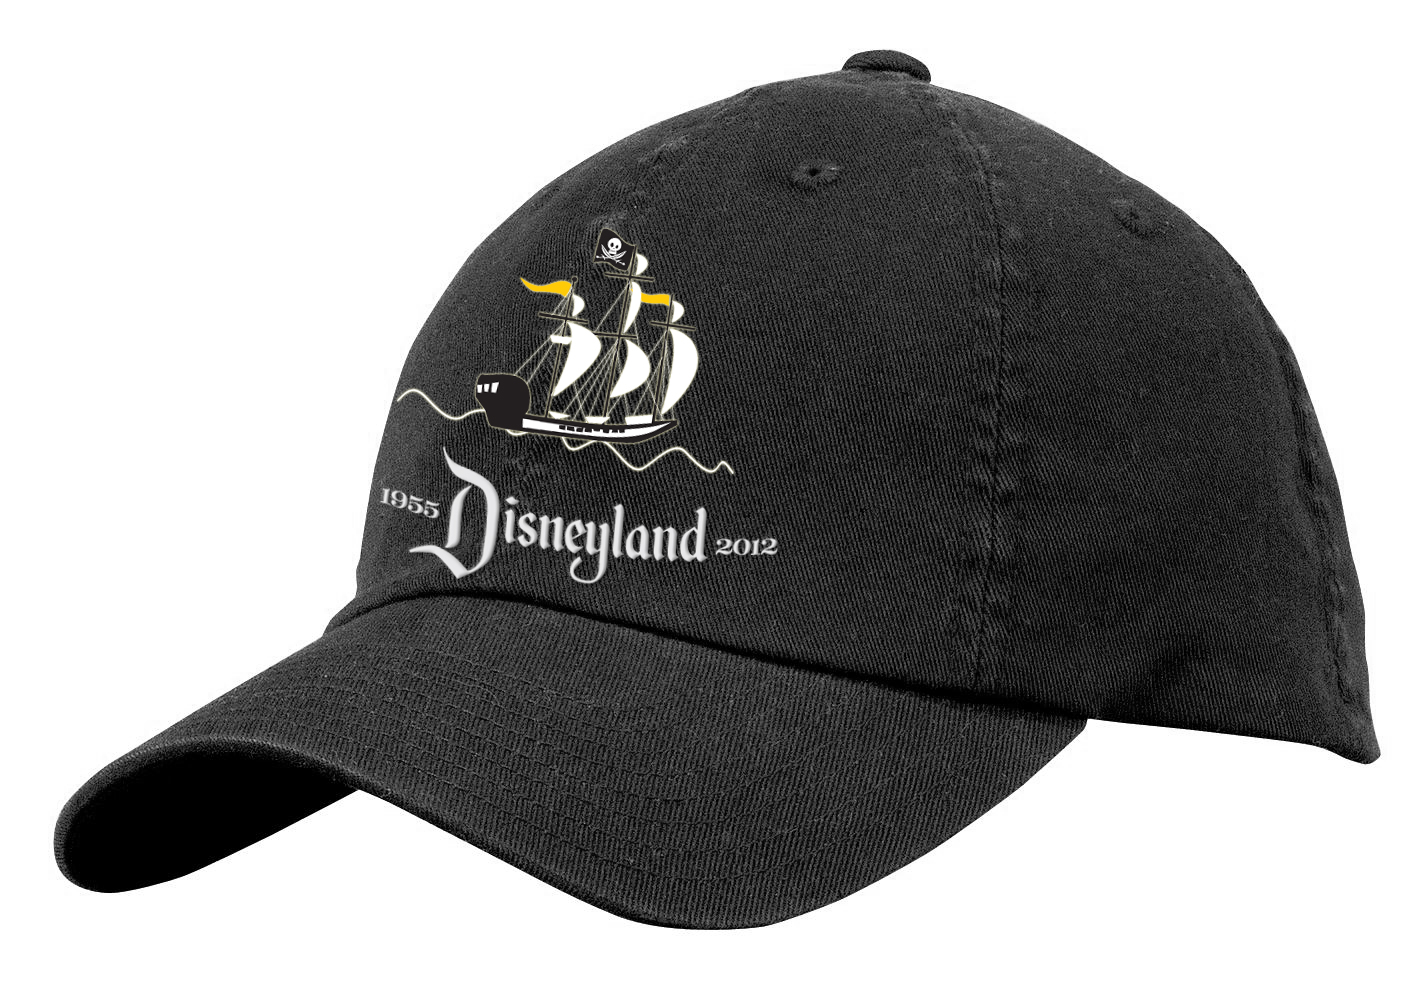 Disneyland-map-cap-1.jpg